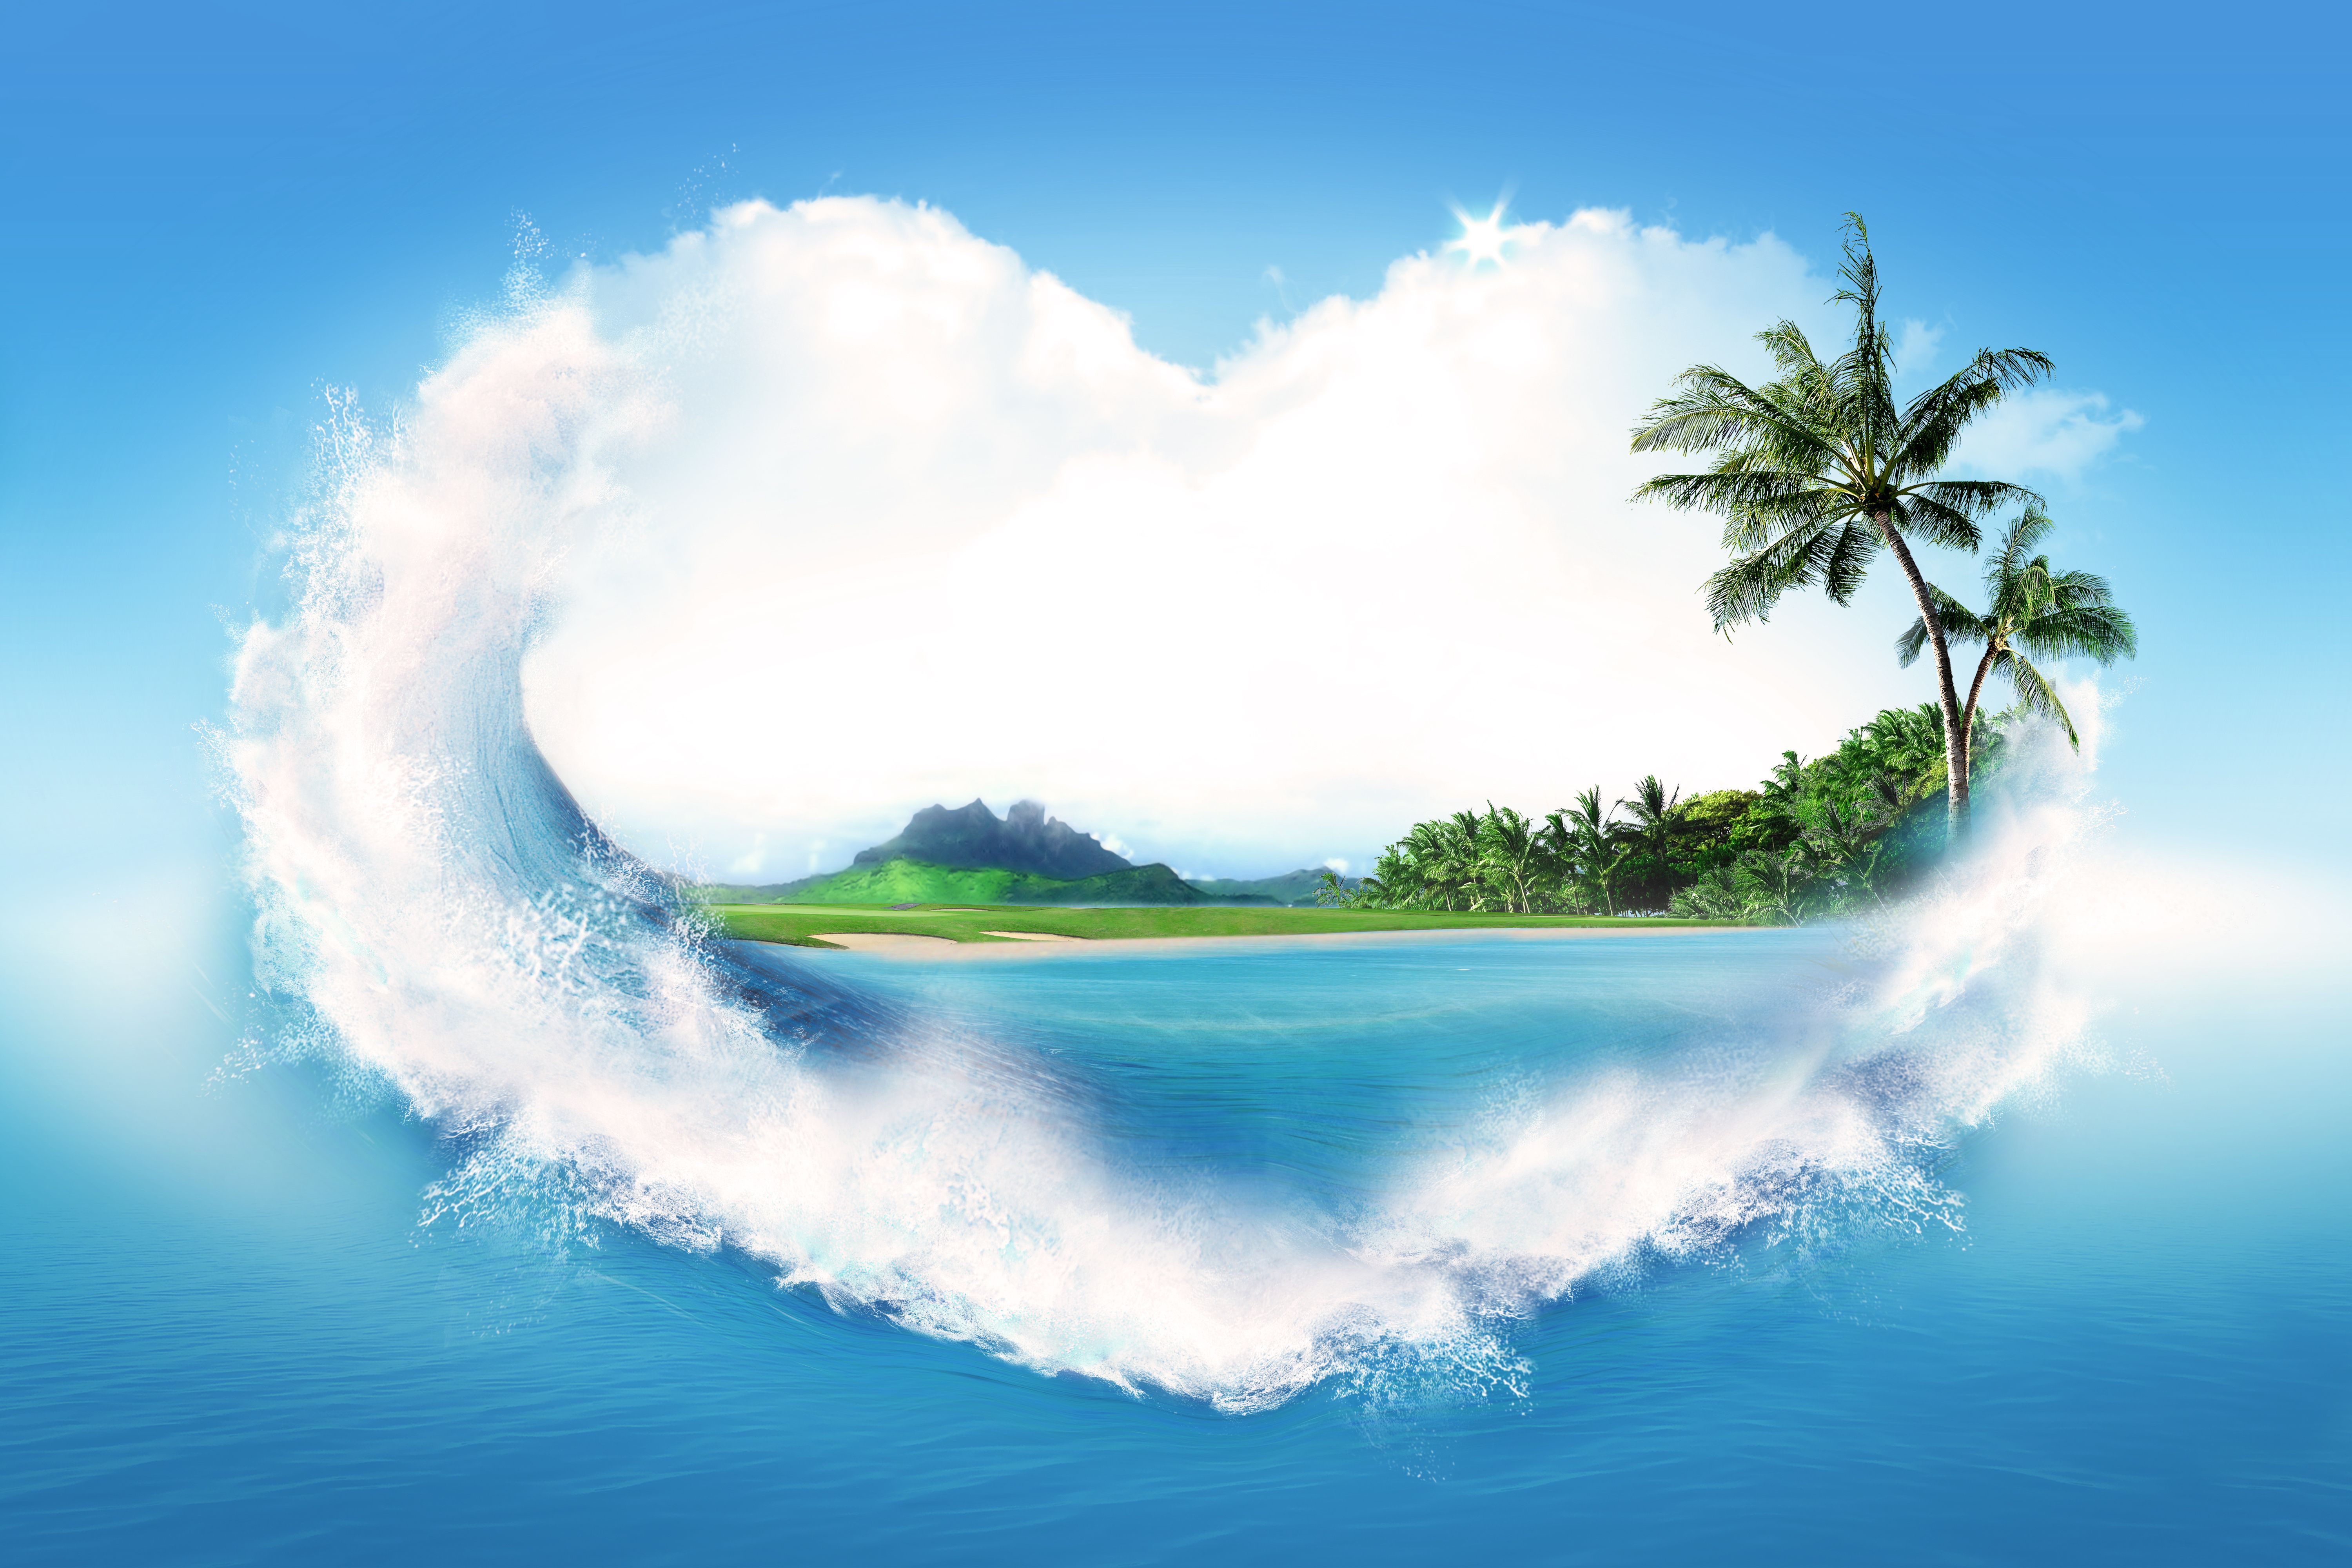 Wallpapers Heart Nature palm trees Palms Heart Nature photo palm trees wallpaper image download on the desktop...